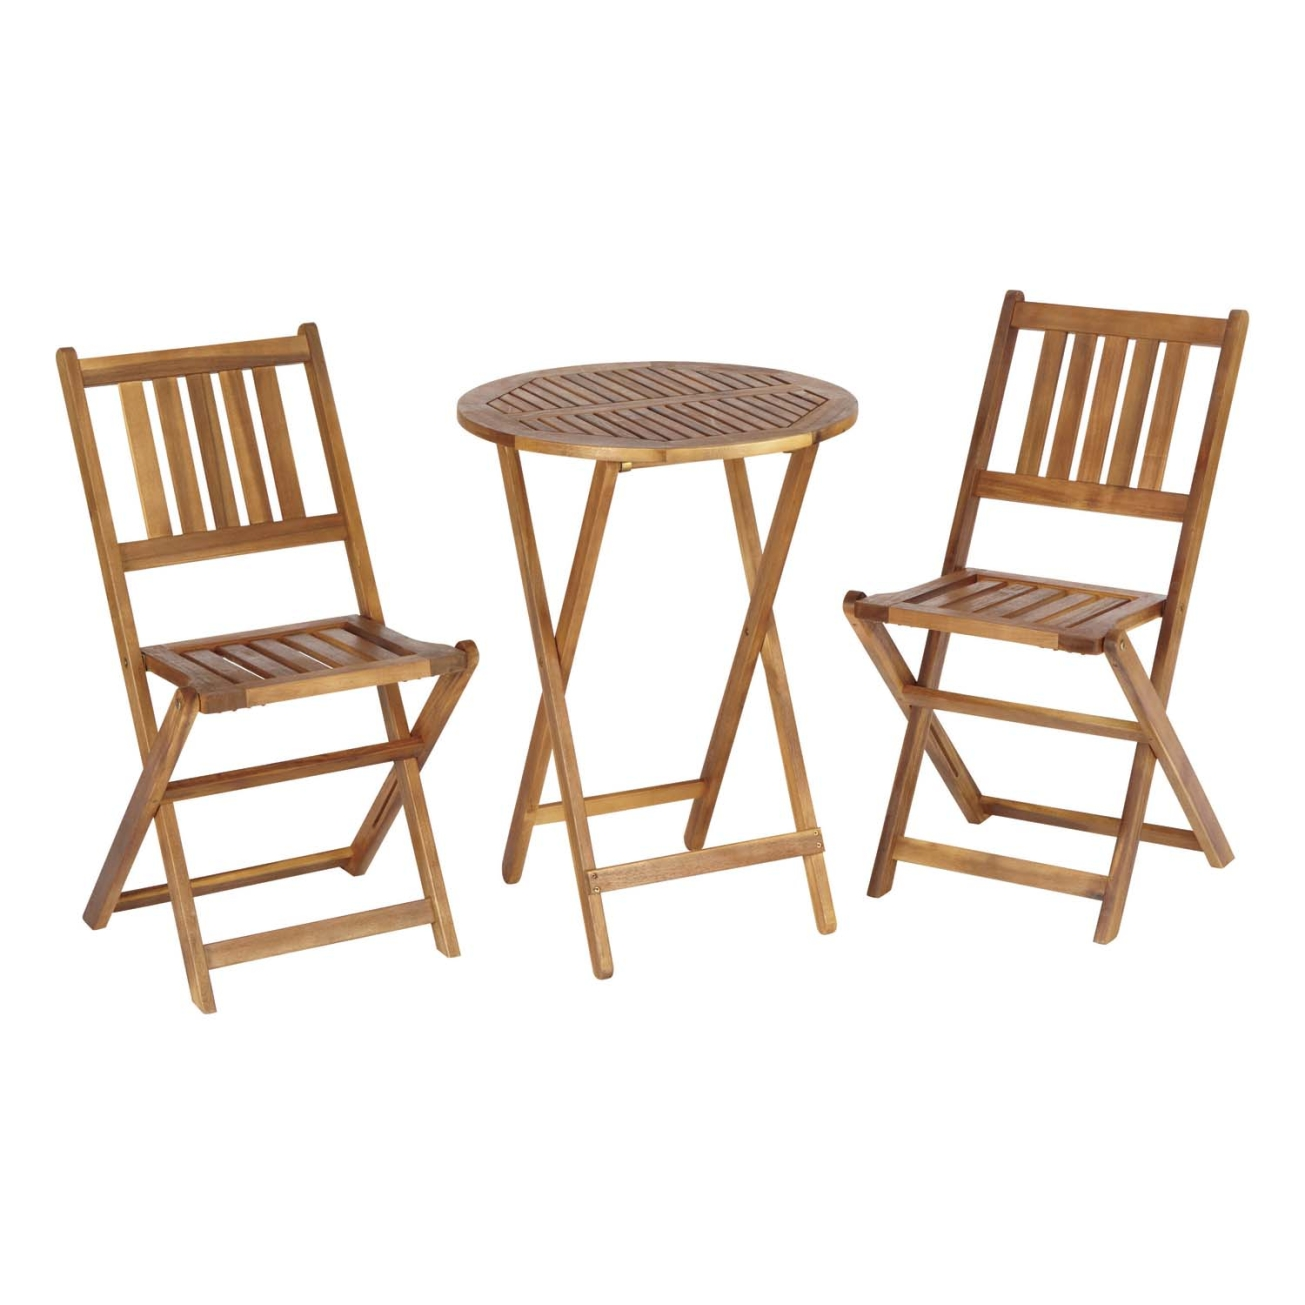 Get a nice spot in your garden or patio by decorating an for Patio table chair sets